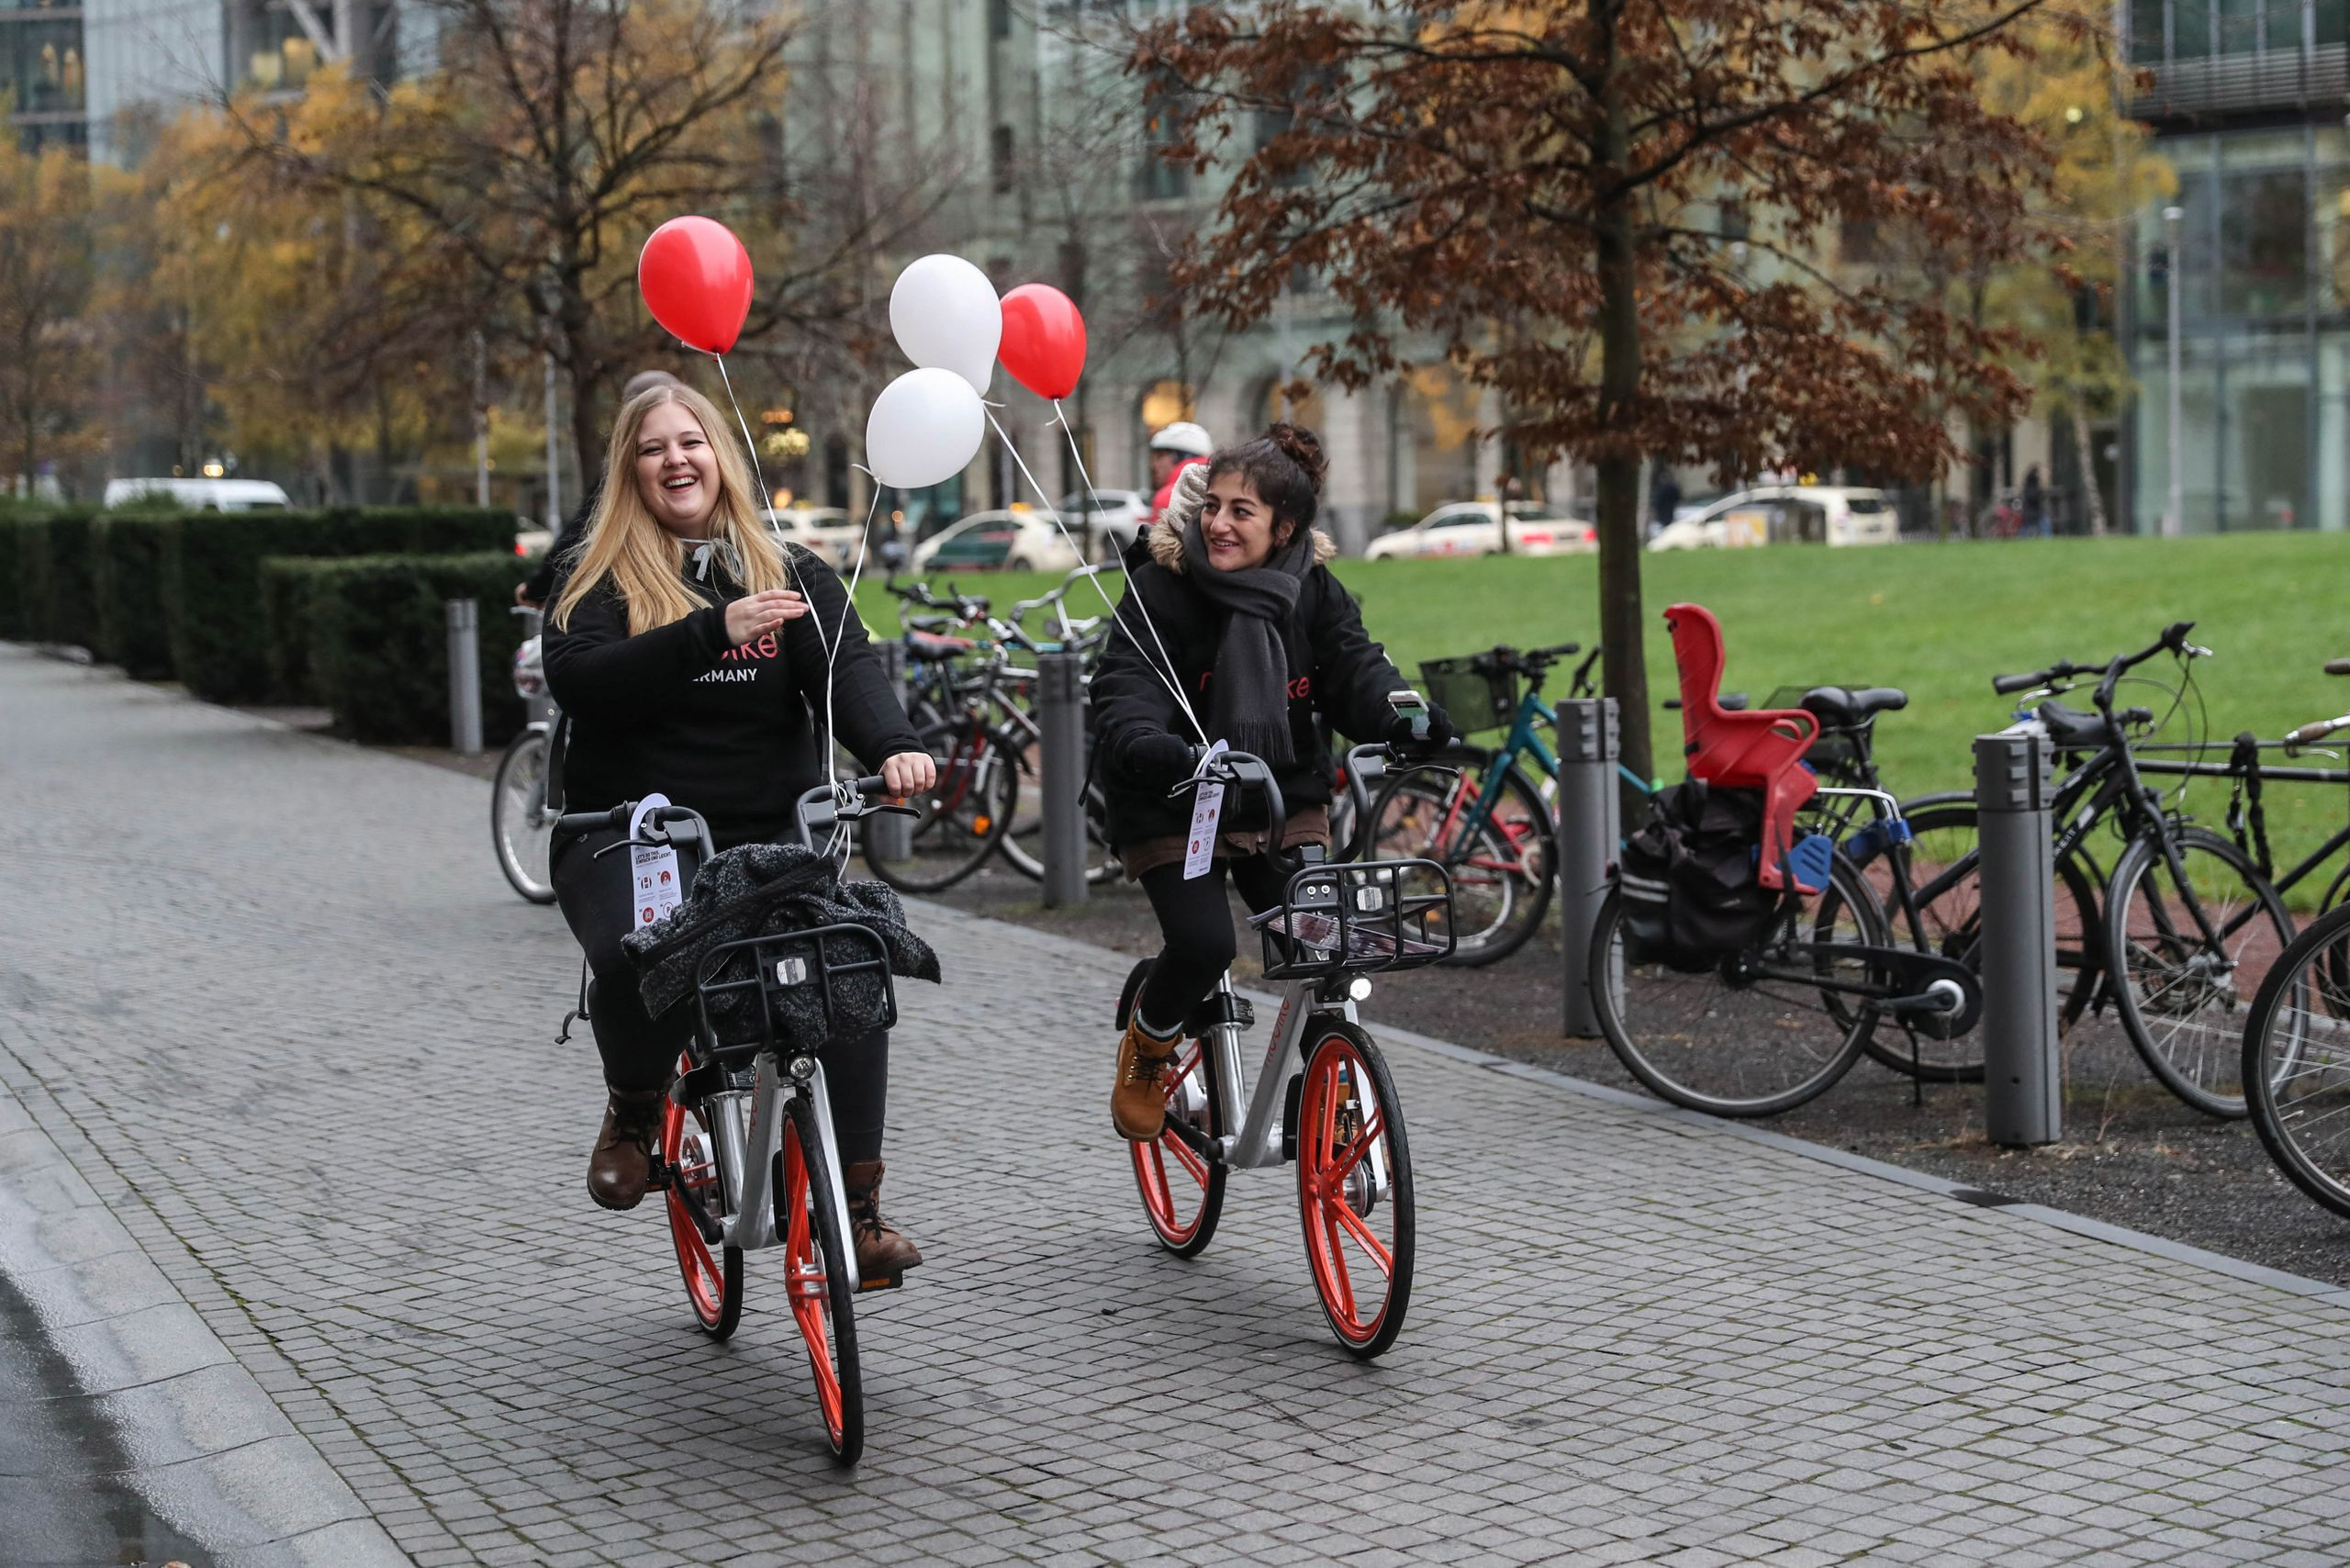 Staff members of Chinese bike-sharing company Mobike ride some of the company's 700 bicycles as it launches service in Berlin